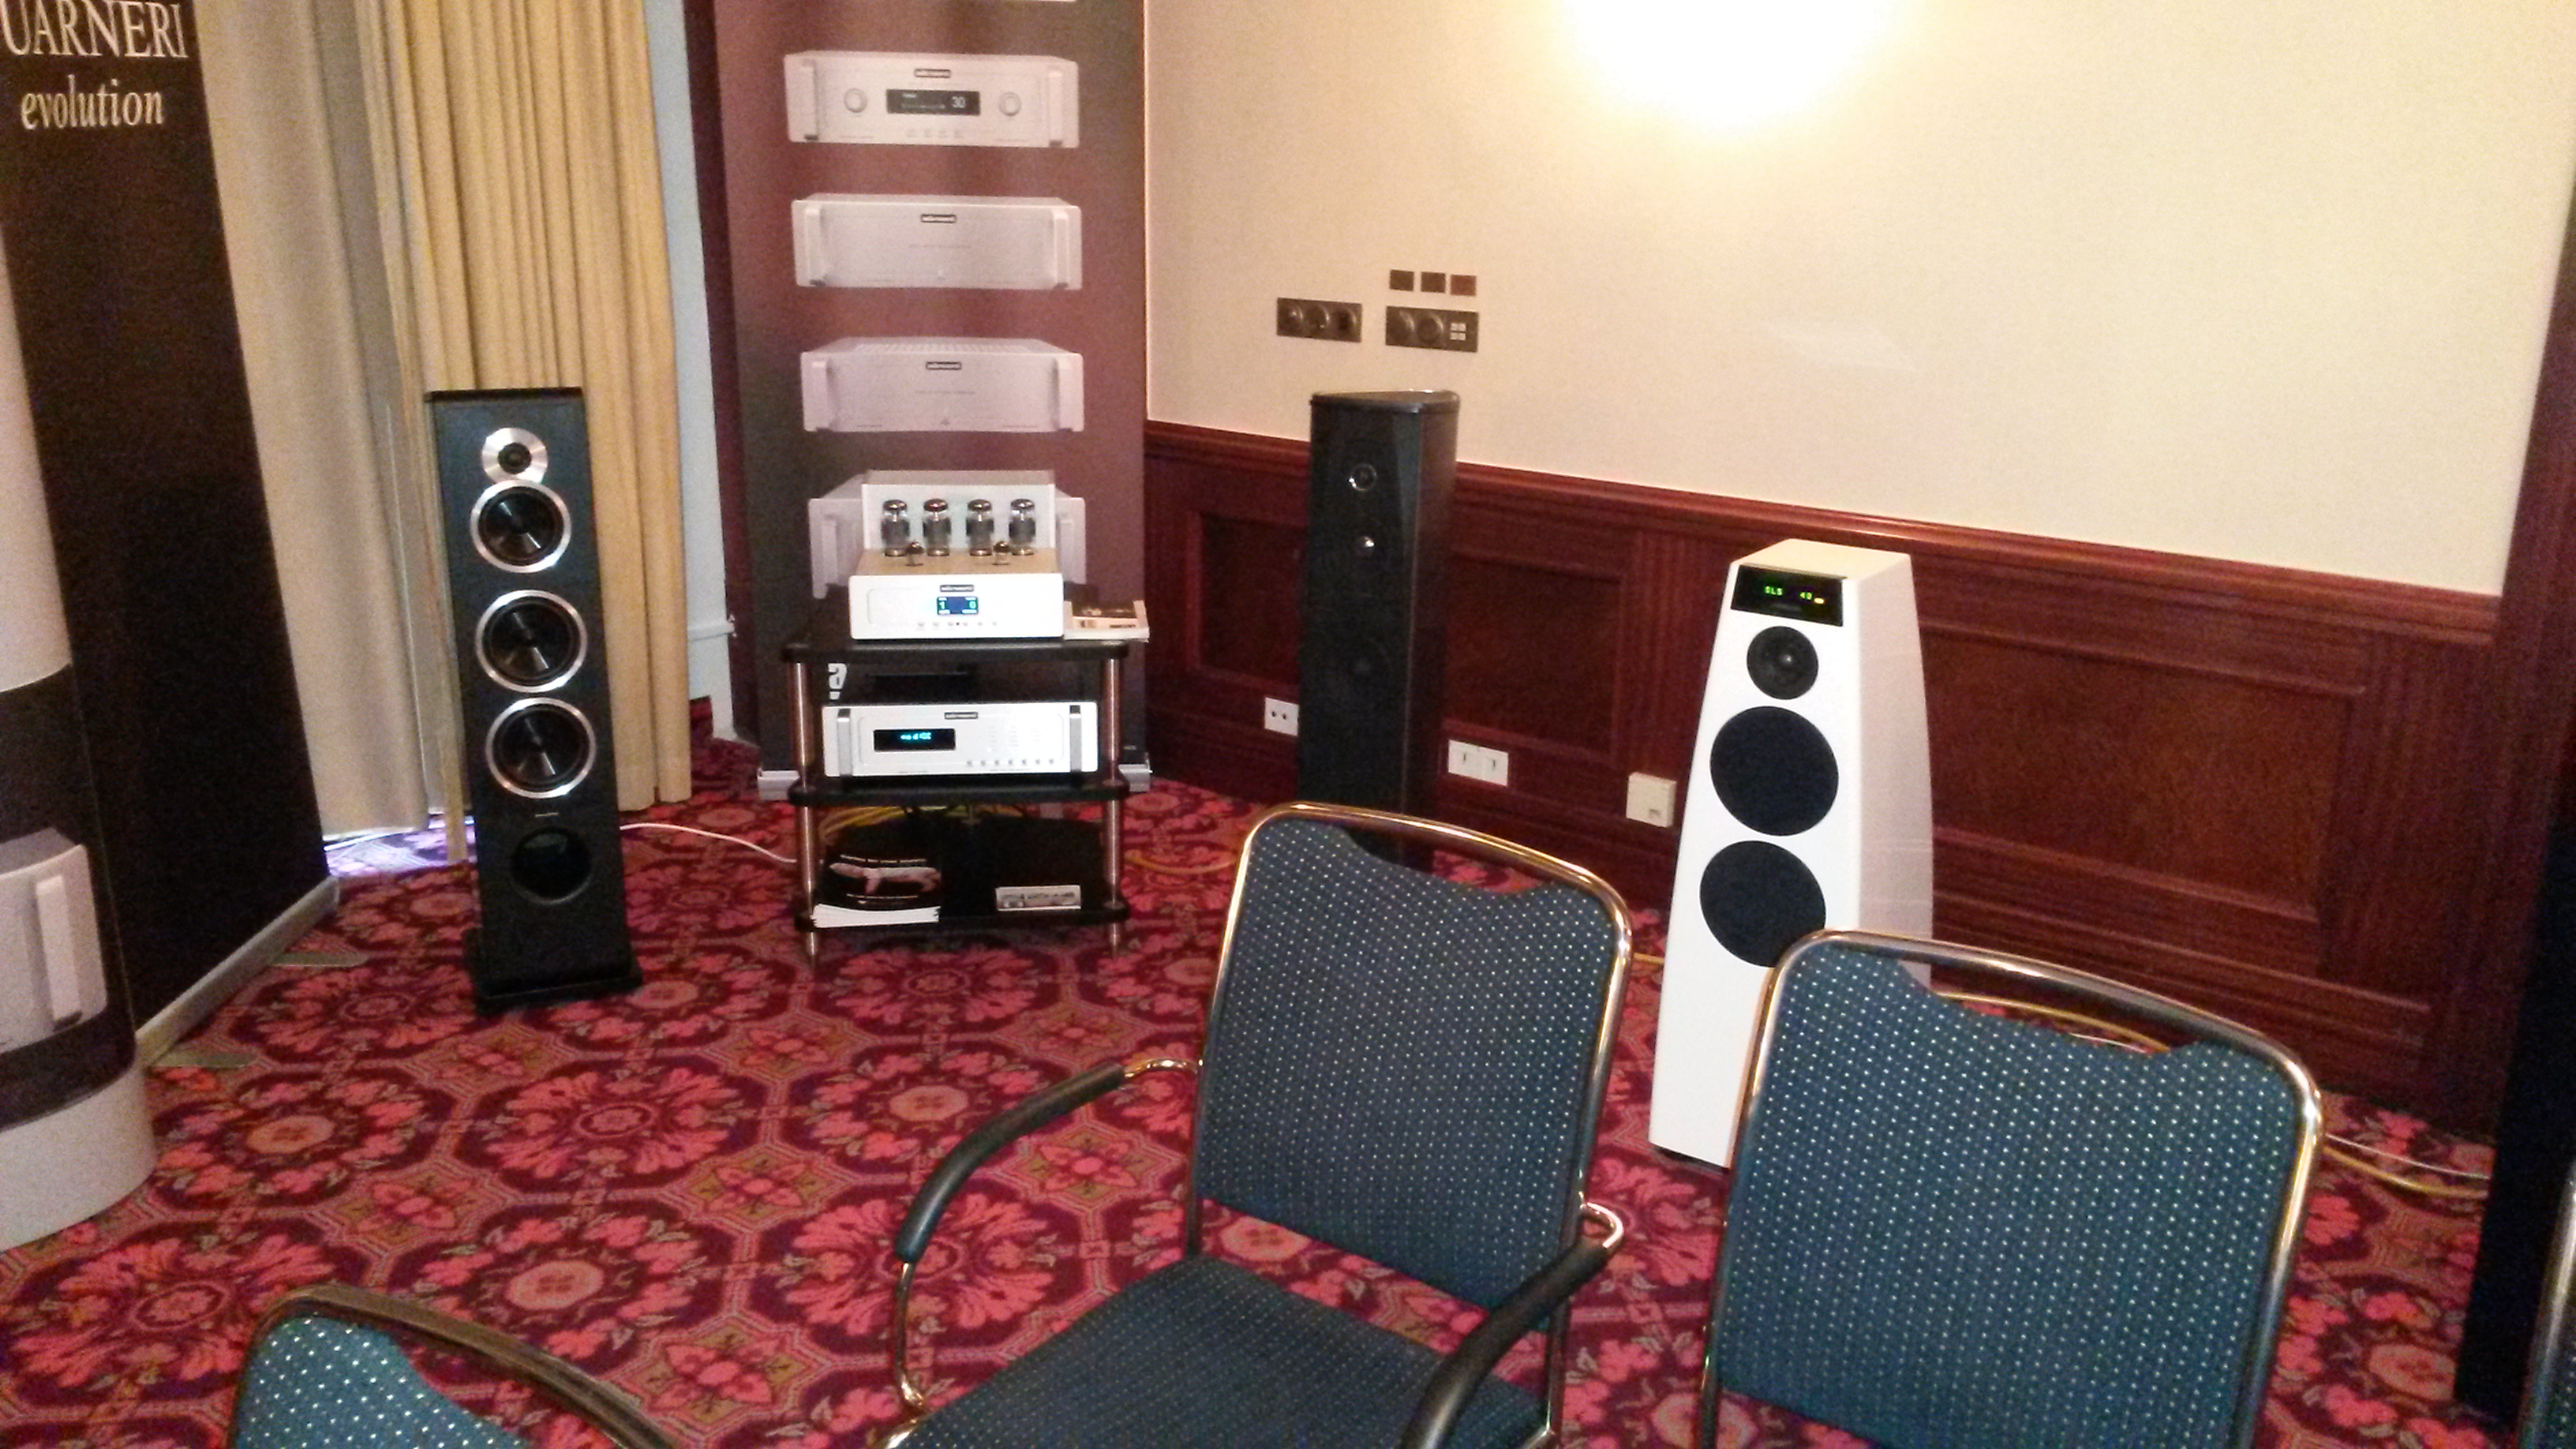 Westdeutsche HiFi-Tage 2015, audio-area, Audio Reference, Sonus faber, Meridian, Audio Research, Bassocontinuo